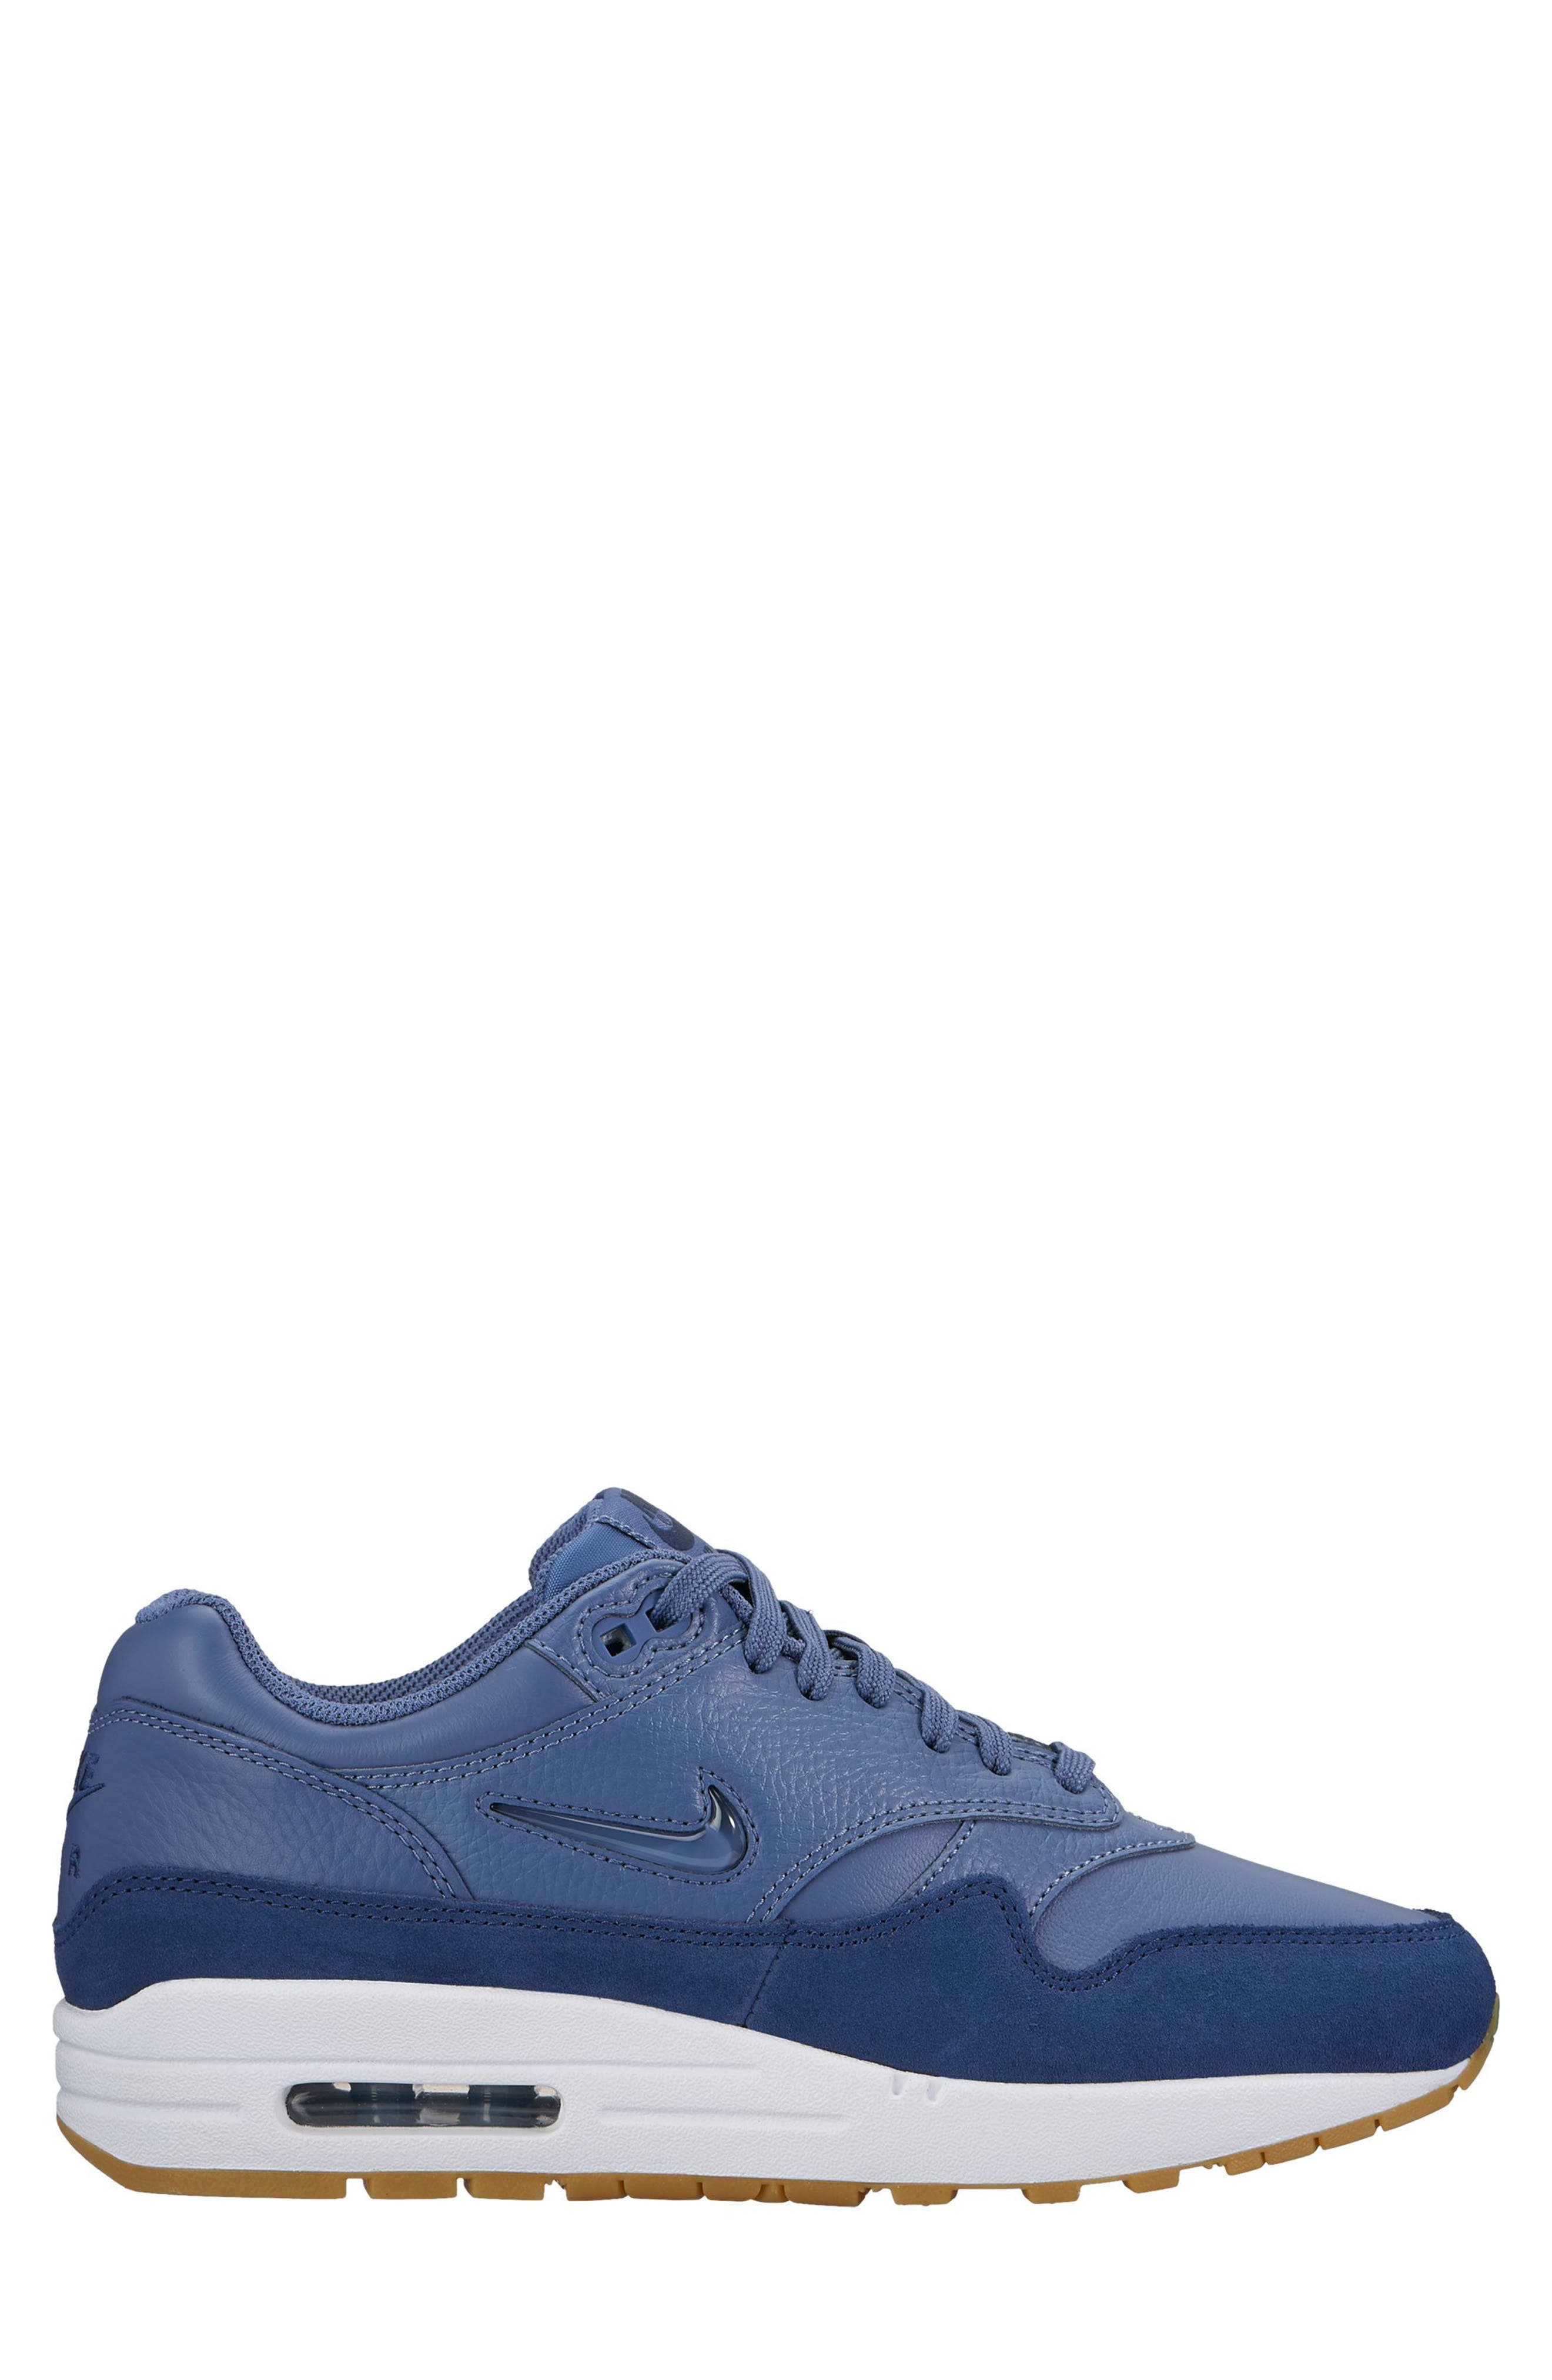 Air Max 1 Premium SC Sneaker,                         Main,                         color, Diffused Blue/ Diffused Blue